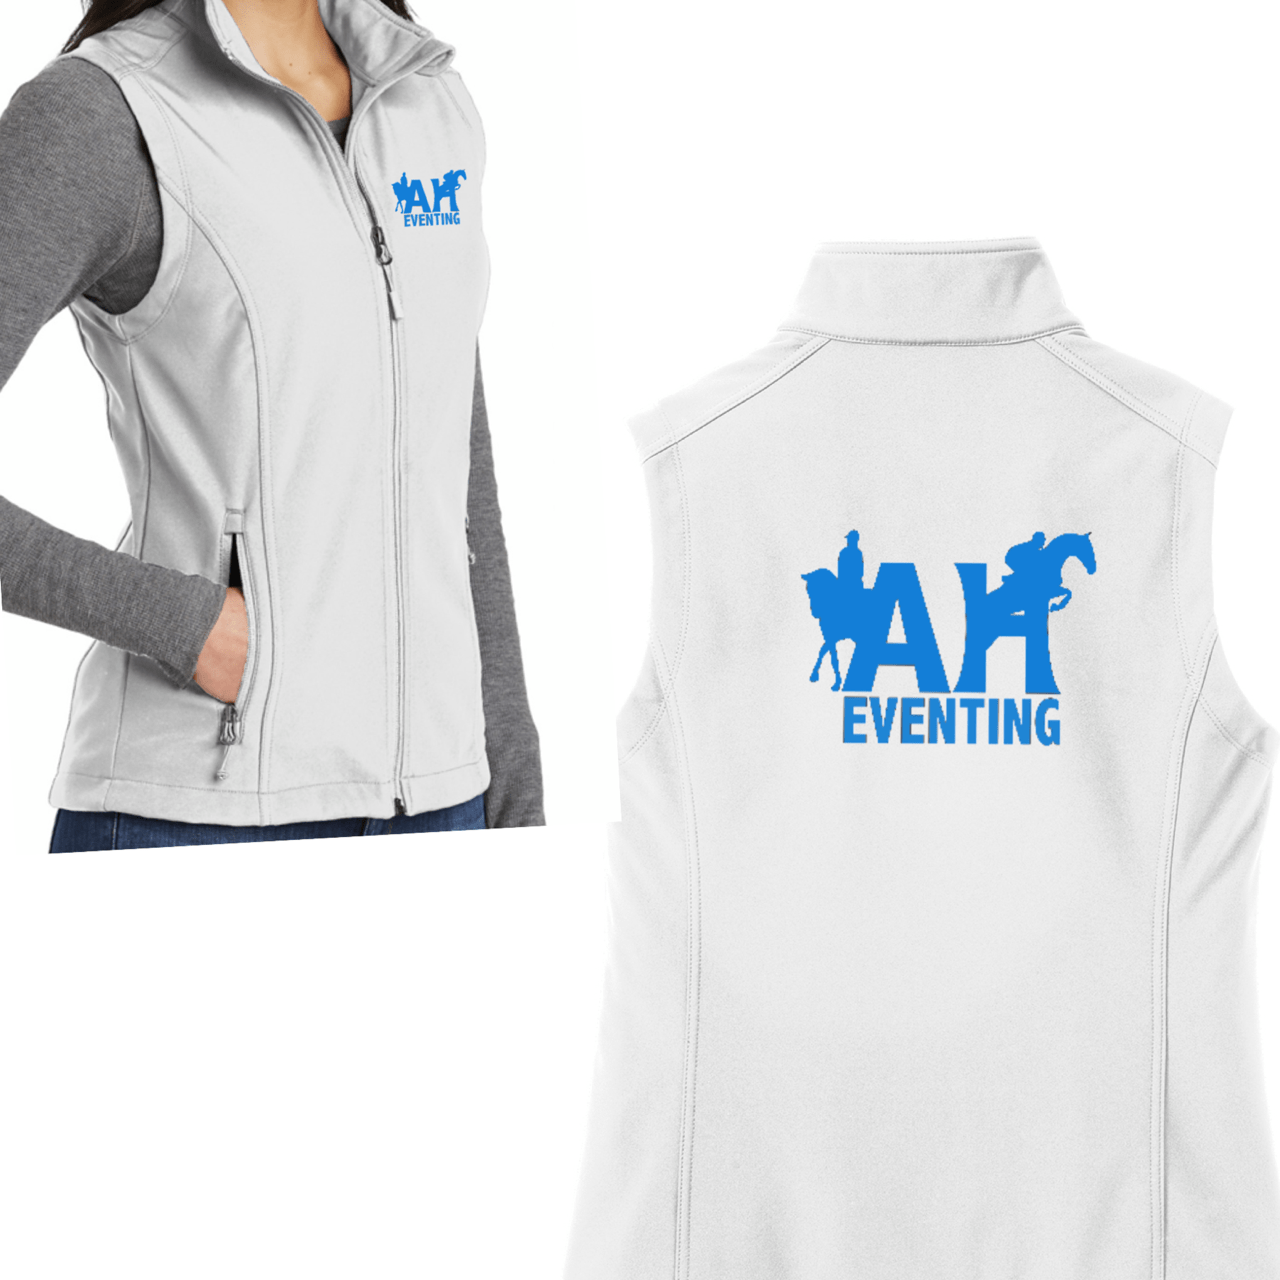 Equestrian Team Apparel Custom Jacket AH Eventing Women's Vest equestrian team apparel online tack store mobile tack store custom farm apparel custom show stable clothing equestrian lifestyle horse show clothing riding clothes horses equestrian tack store